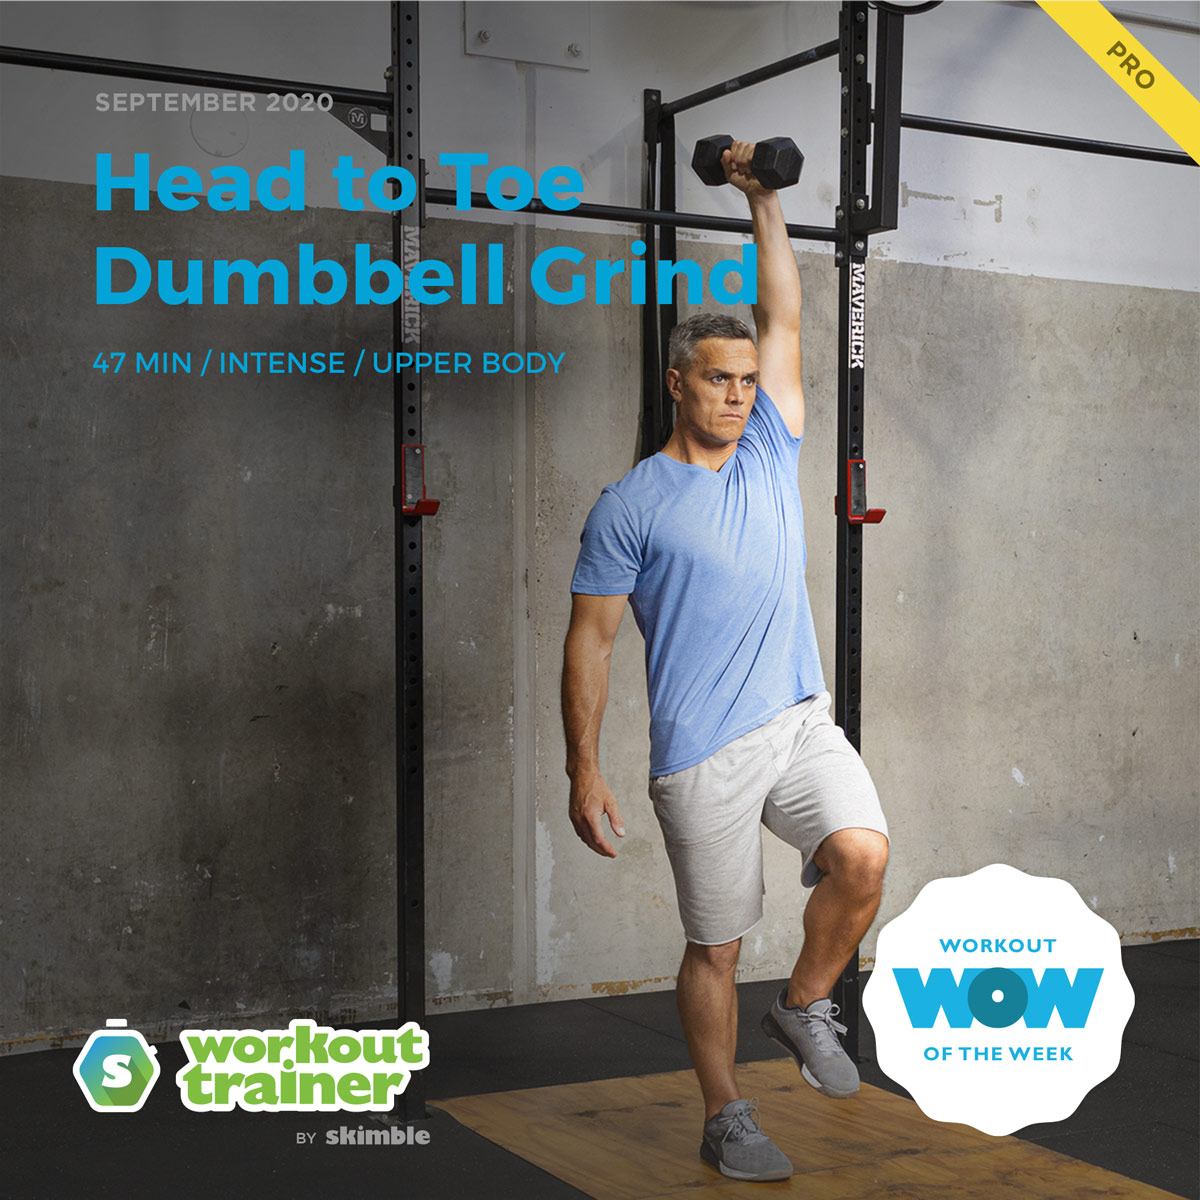 Male CrossFit Trainer performing Dumbbell Single Leg Curl to Press exercise